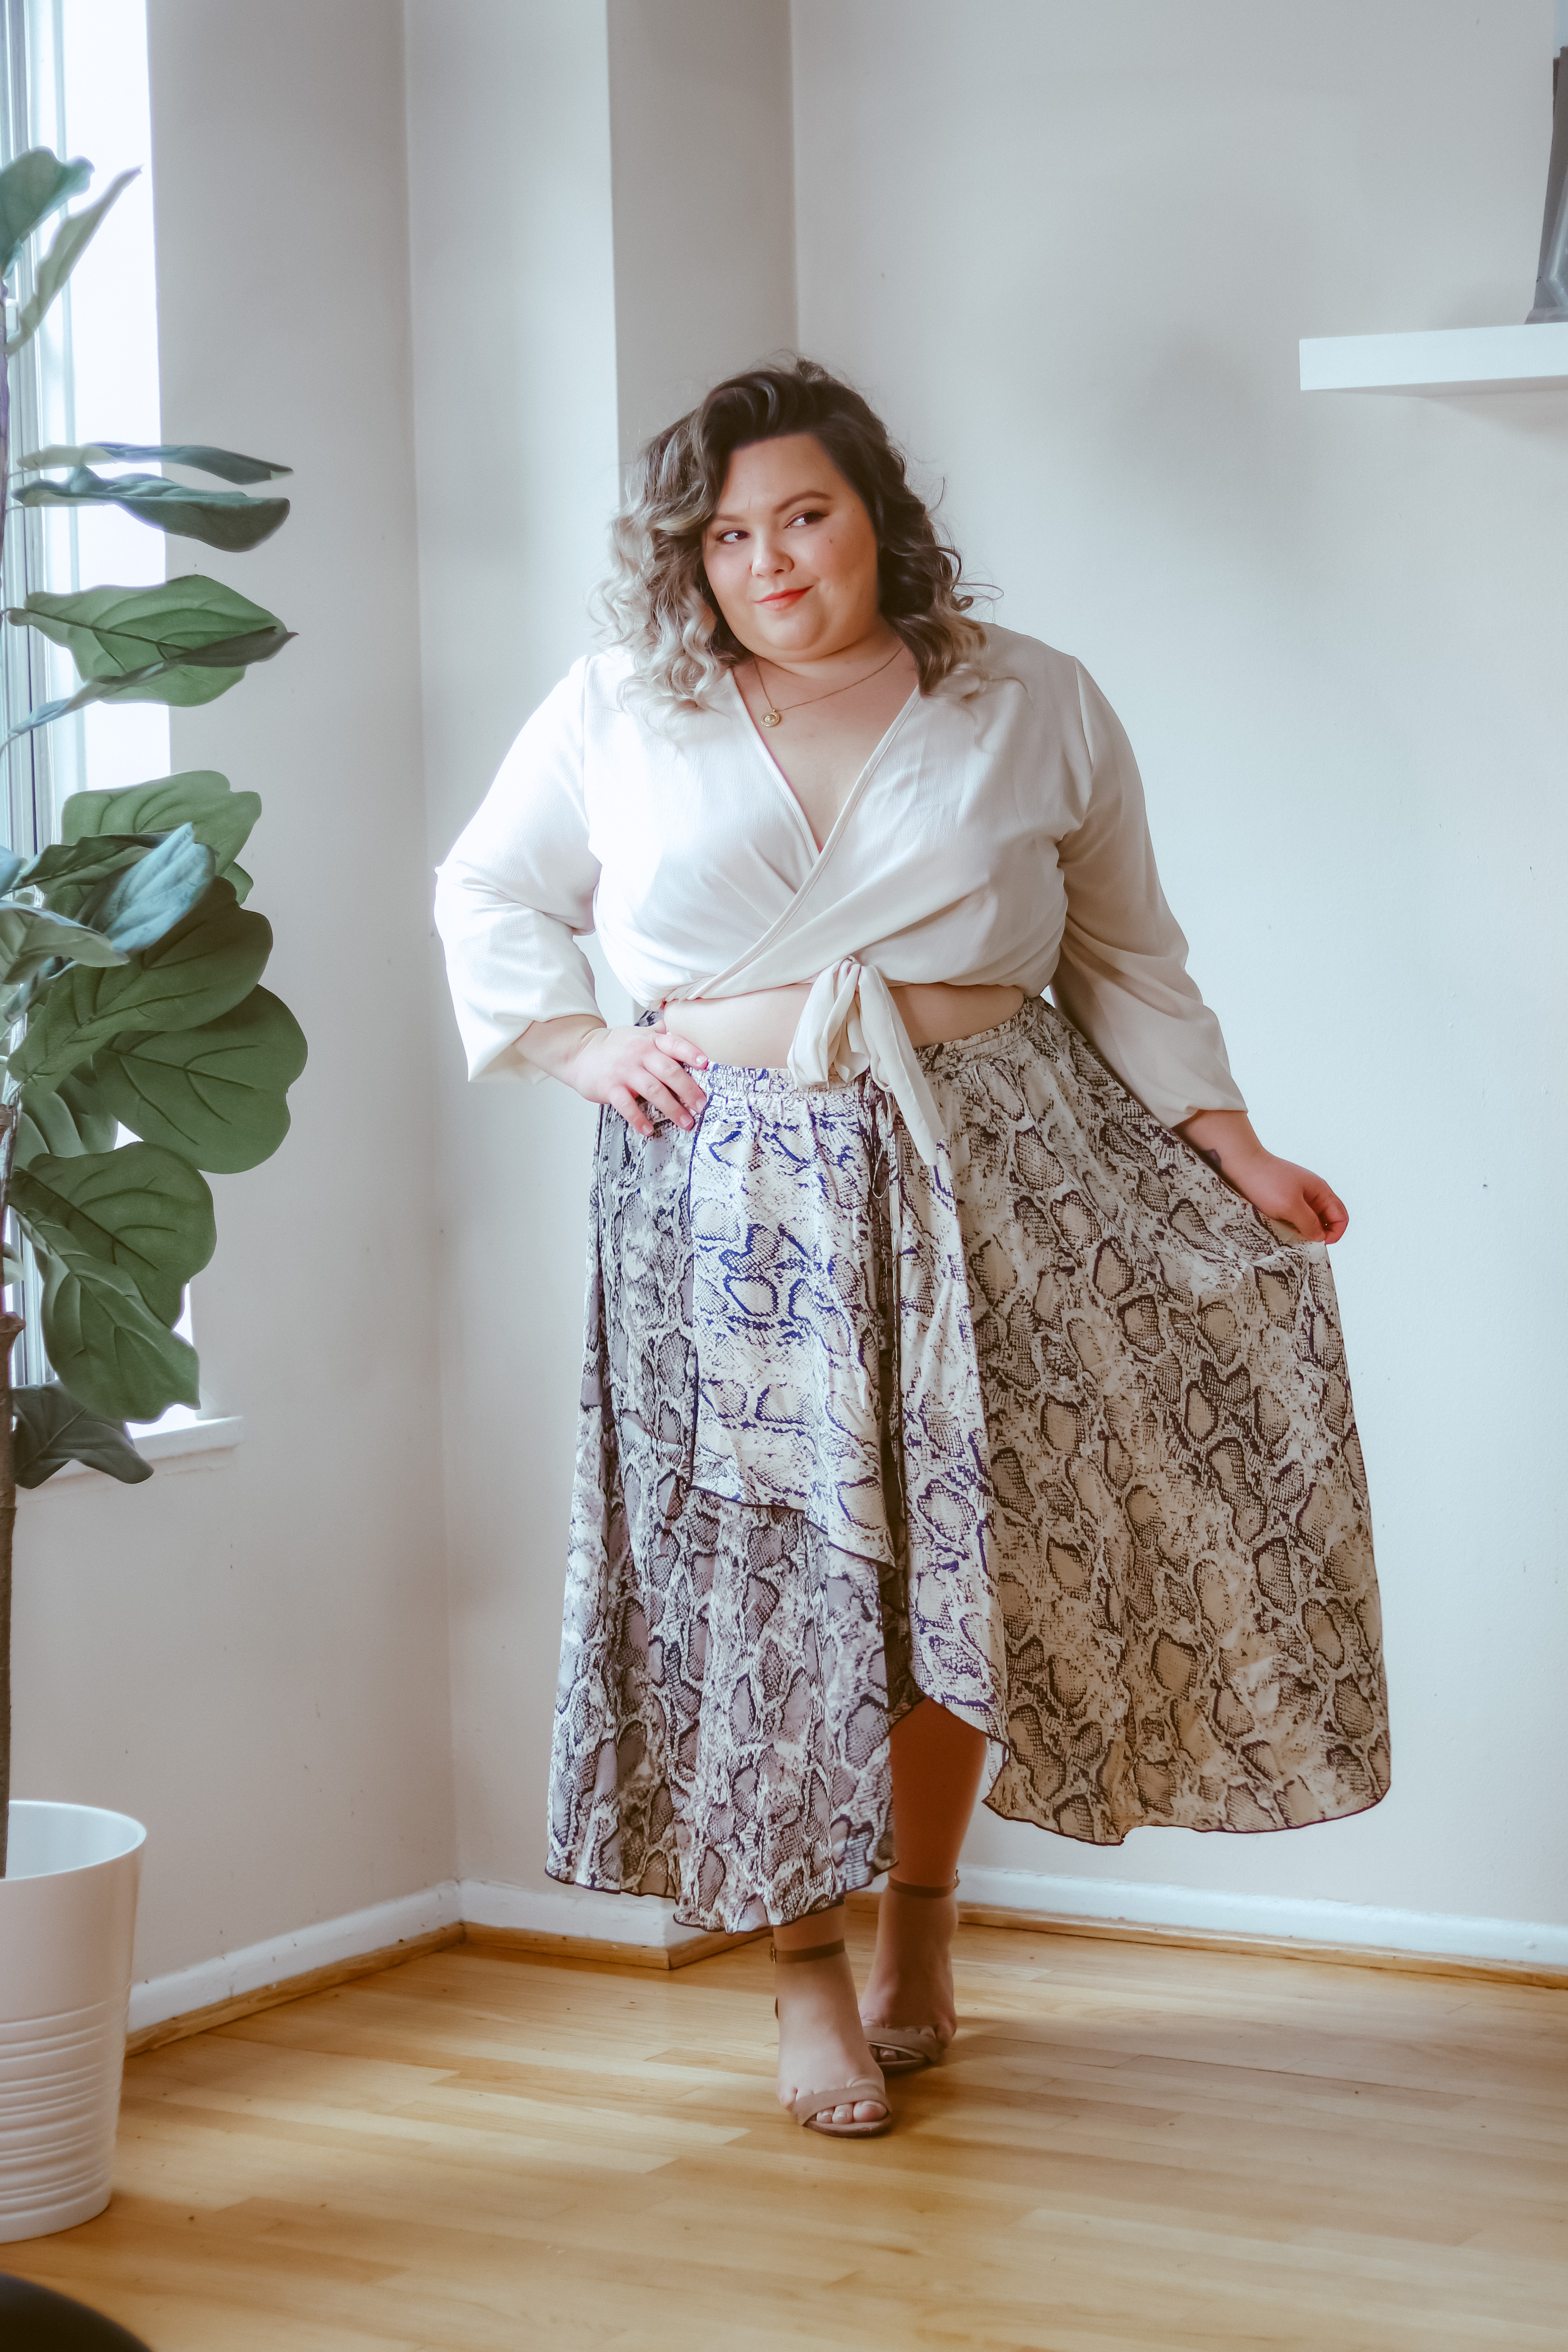 Chicago Plus Size Petite Fashion Blogger, influencer, YouTuber, and model Natalie Craig, of Natalie in the City, styles a snakeskin midi skirt.